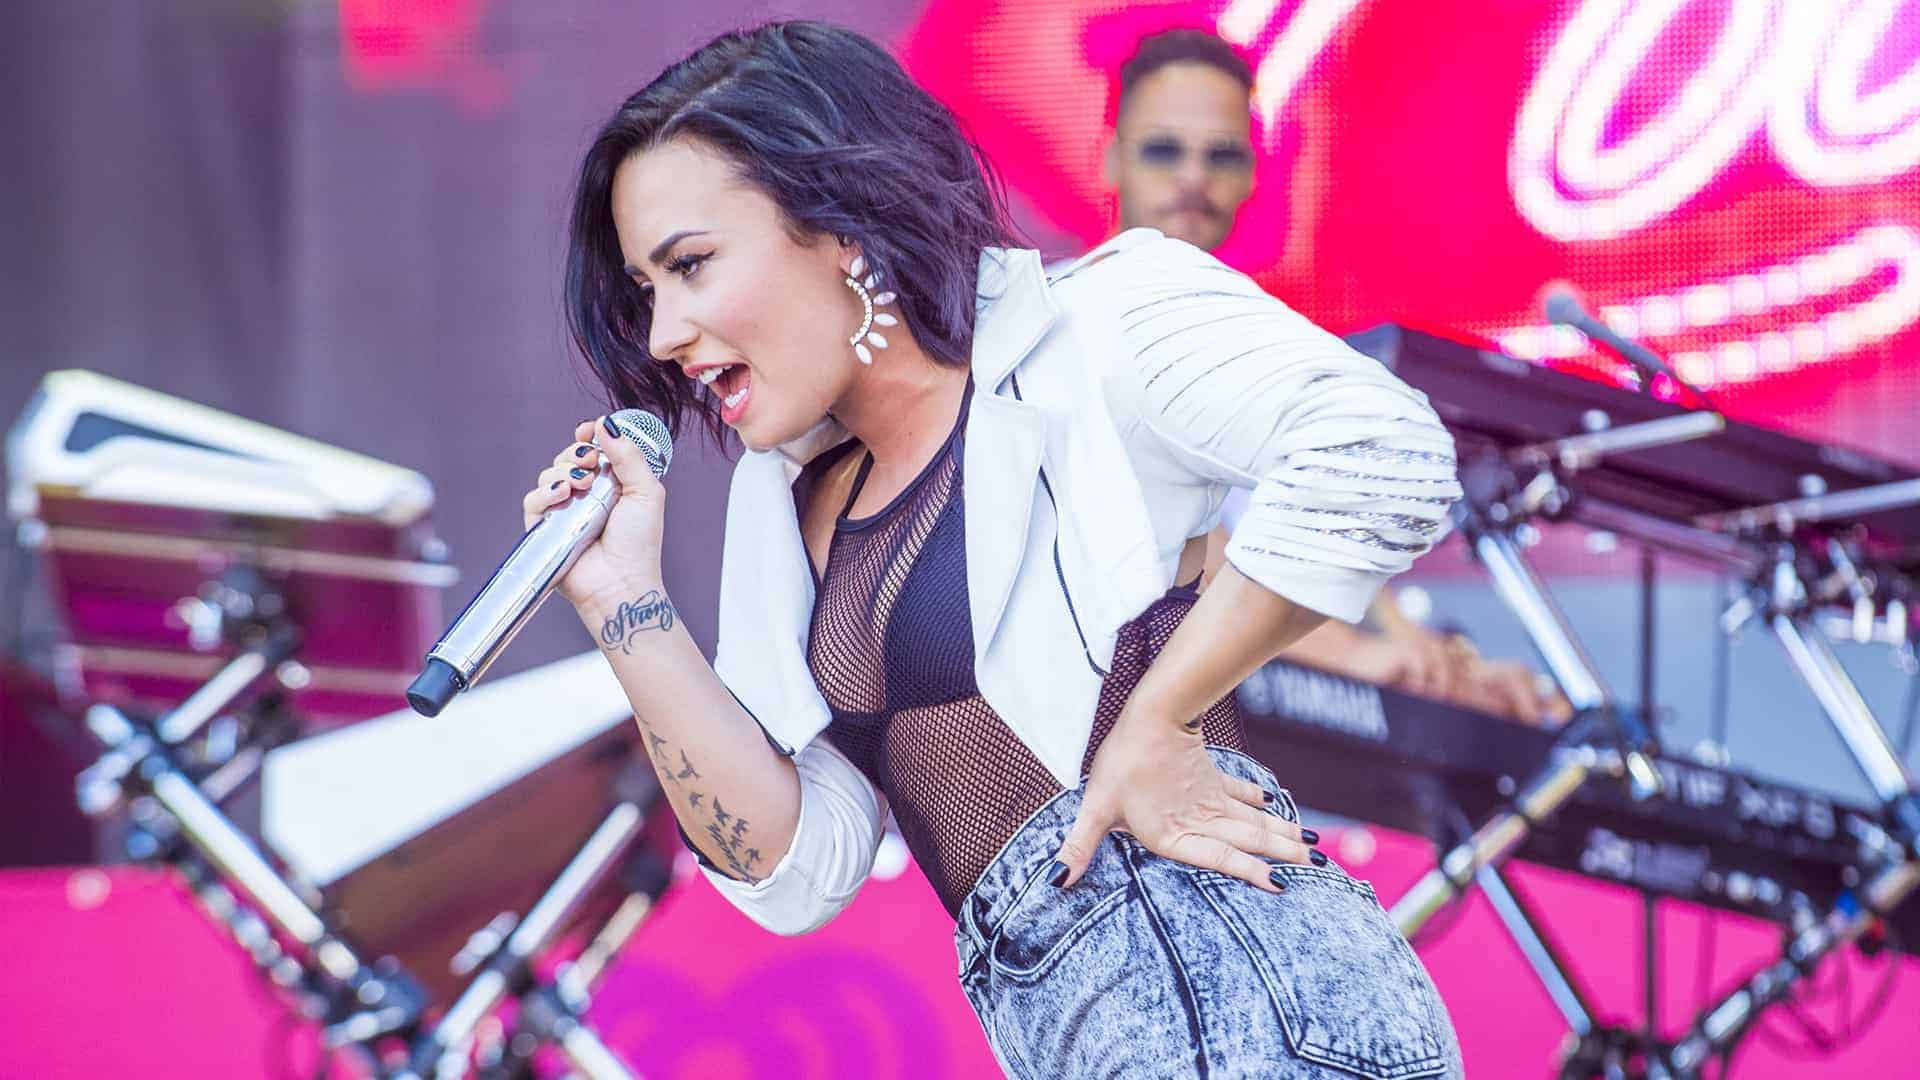 Demi Lovato has never been shy about her struggles with drug and alcohol addiction.